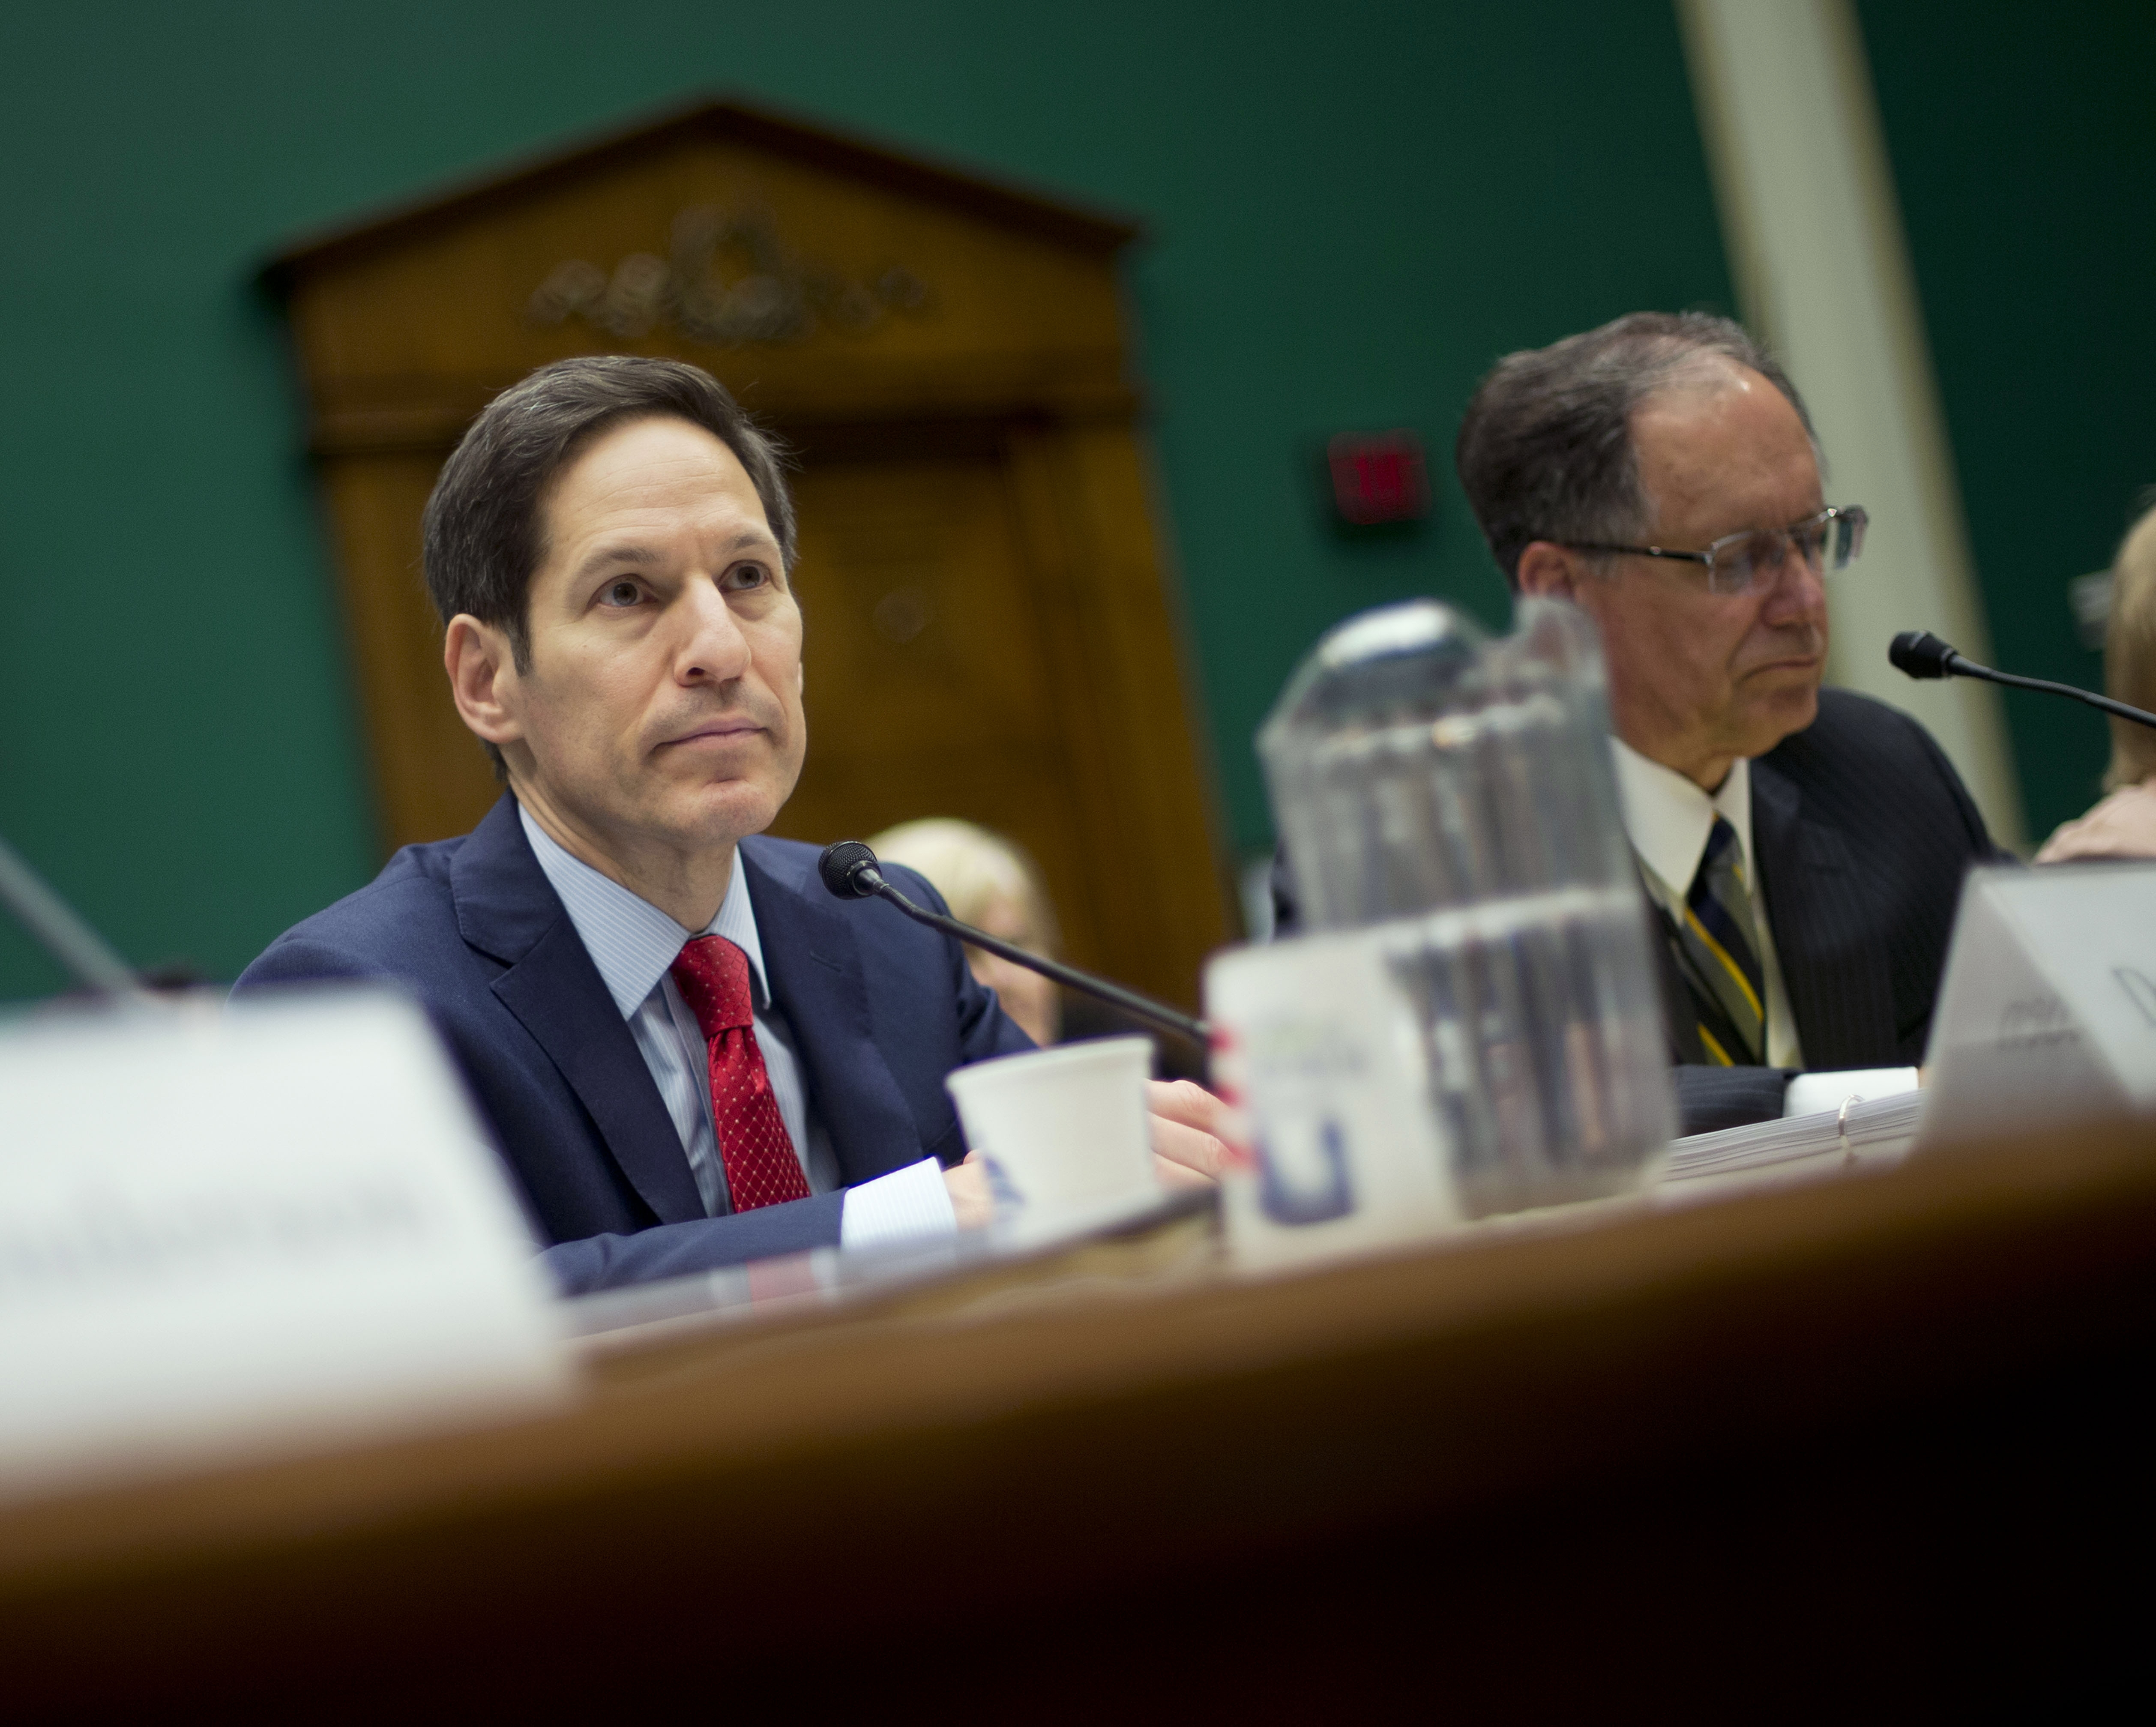 Dr. Thomas Frieden, head of the Centers for Disease Control and Prevention, told Congress the agency is committed to improving safety measures. (AP photo)